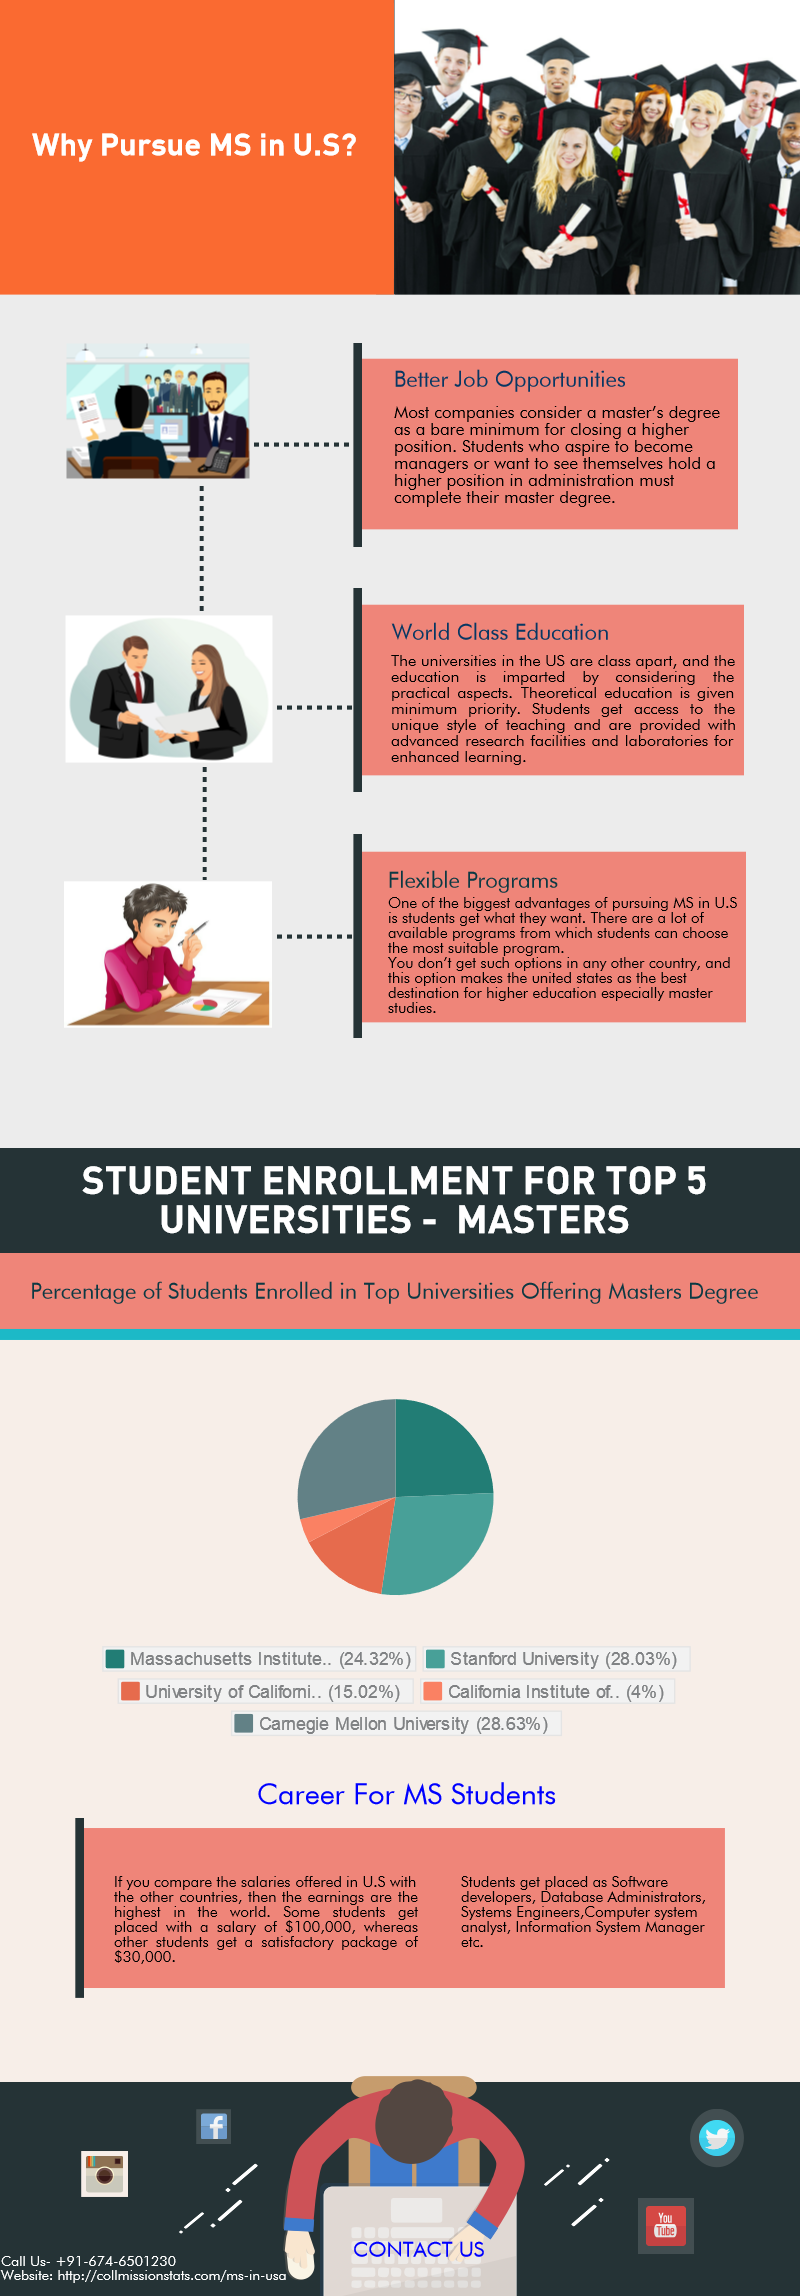 learn about the masters in us best master degree programs graduate school applications how to prepare for the ms degree in top universities many more